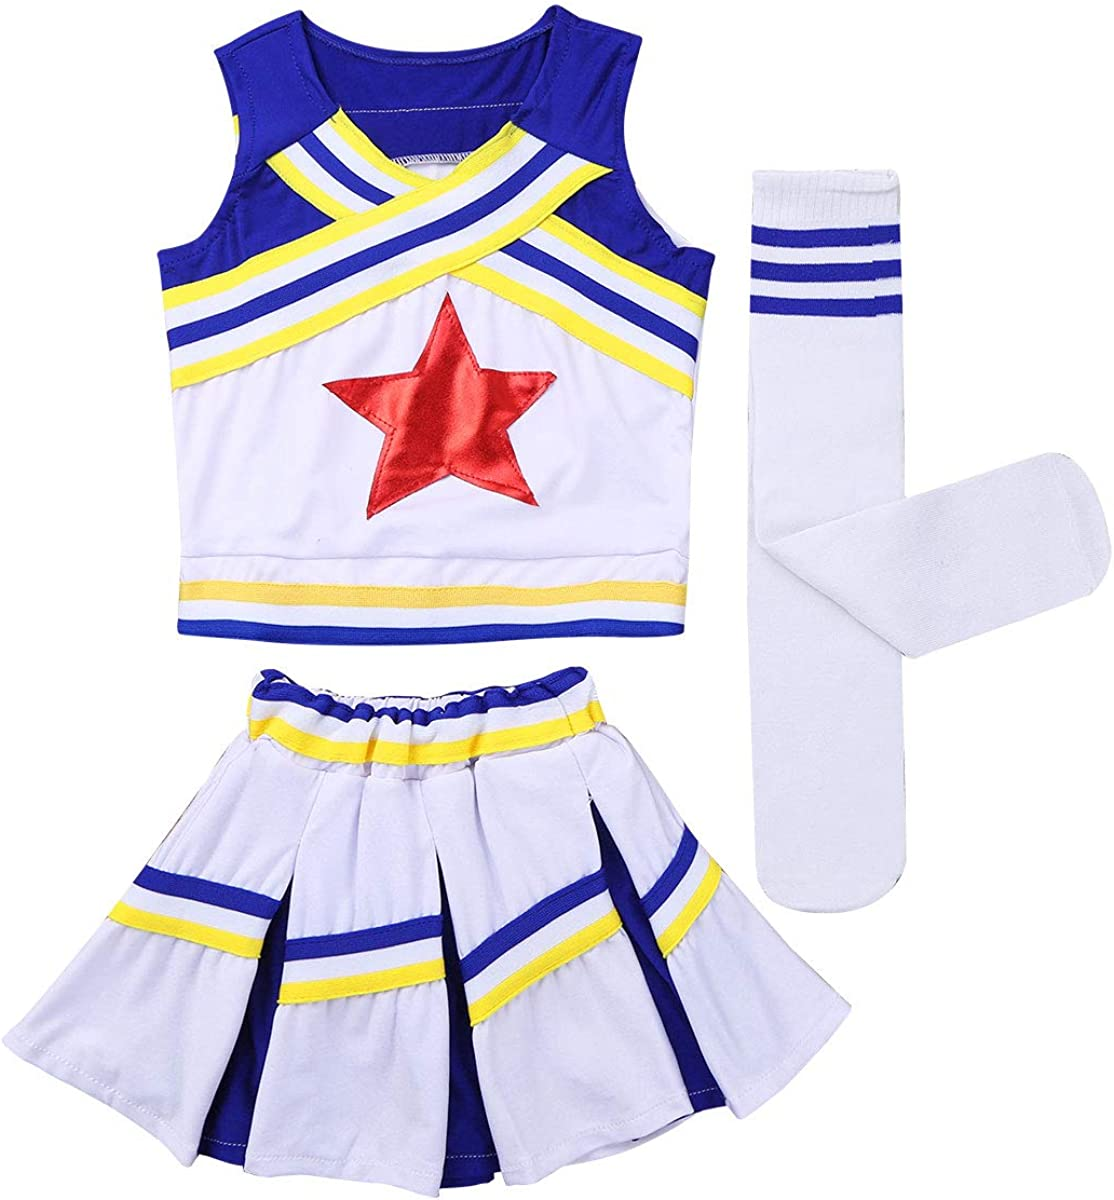 Yeahdor Girls' Patriotic Cheerleading Outfit Uniform Costume Carnival Party Christmas Cosplay Outfits